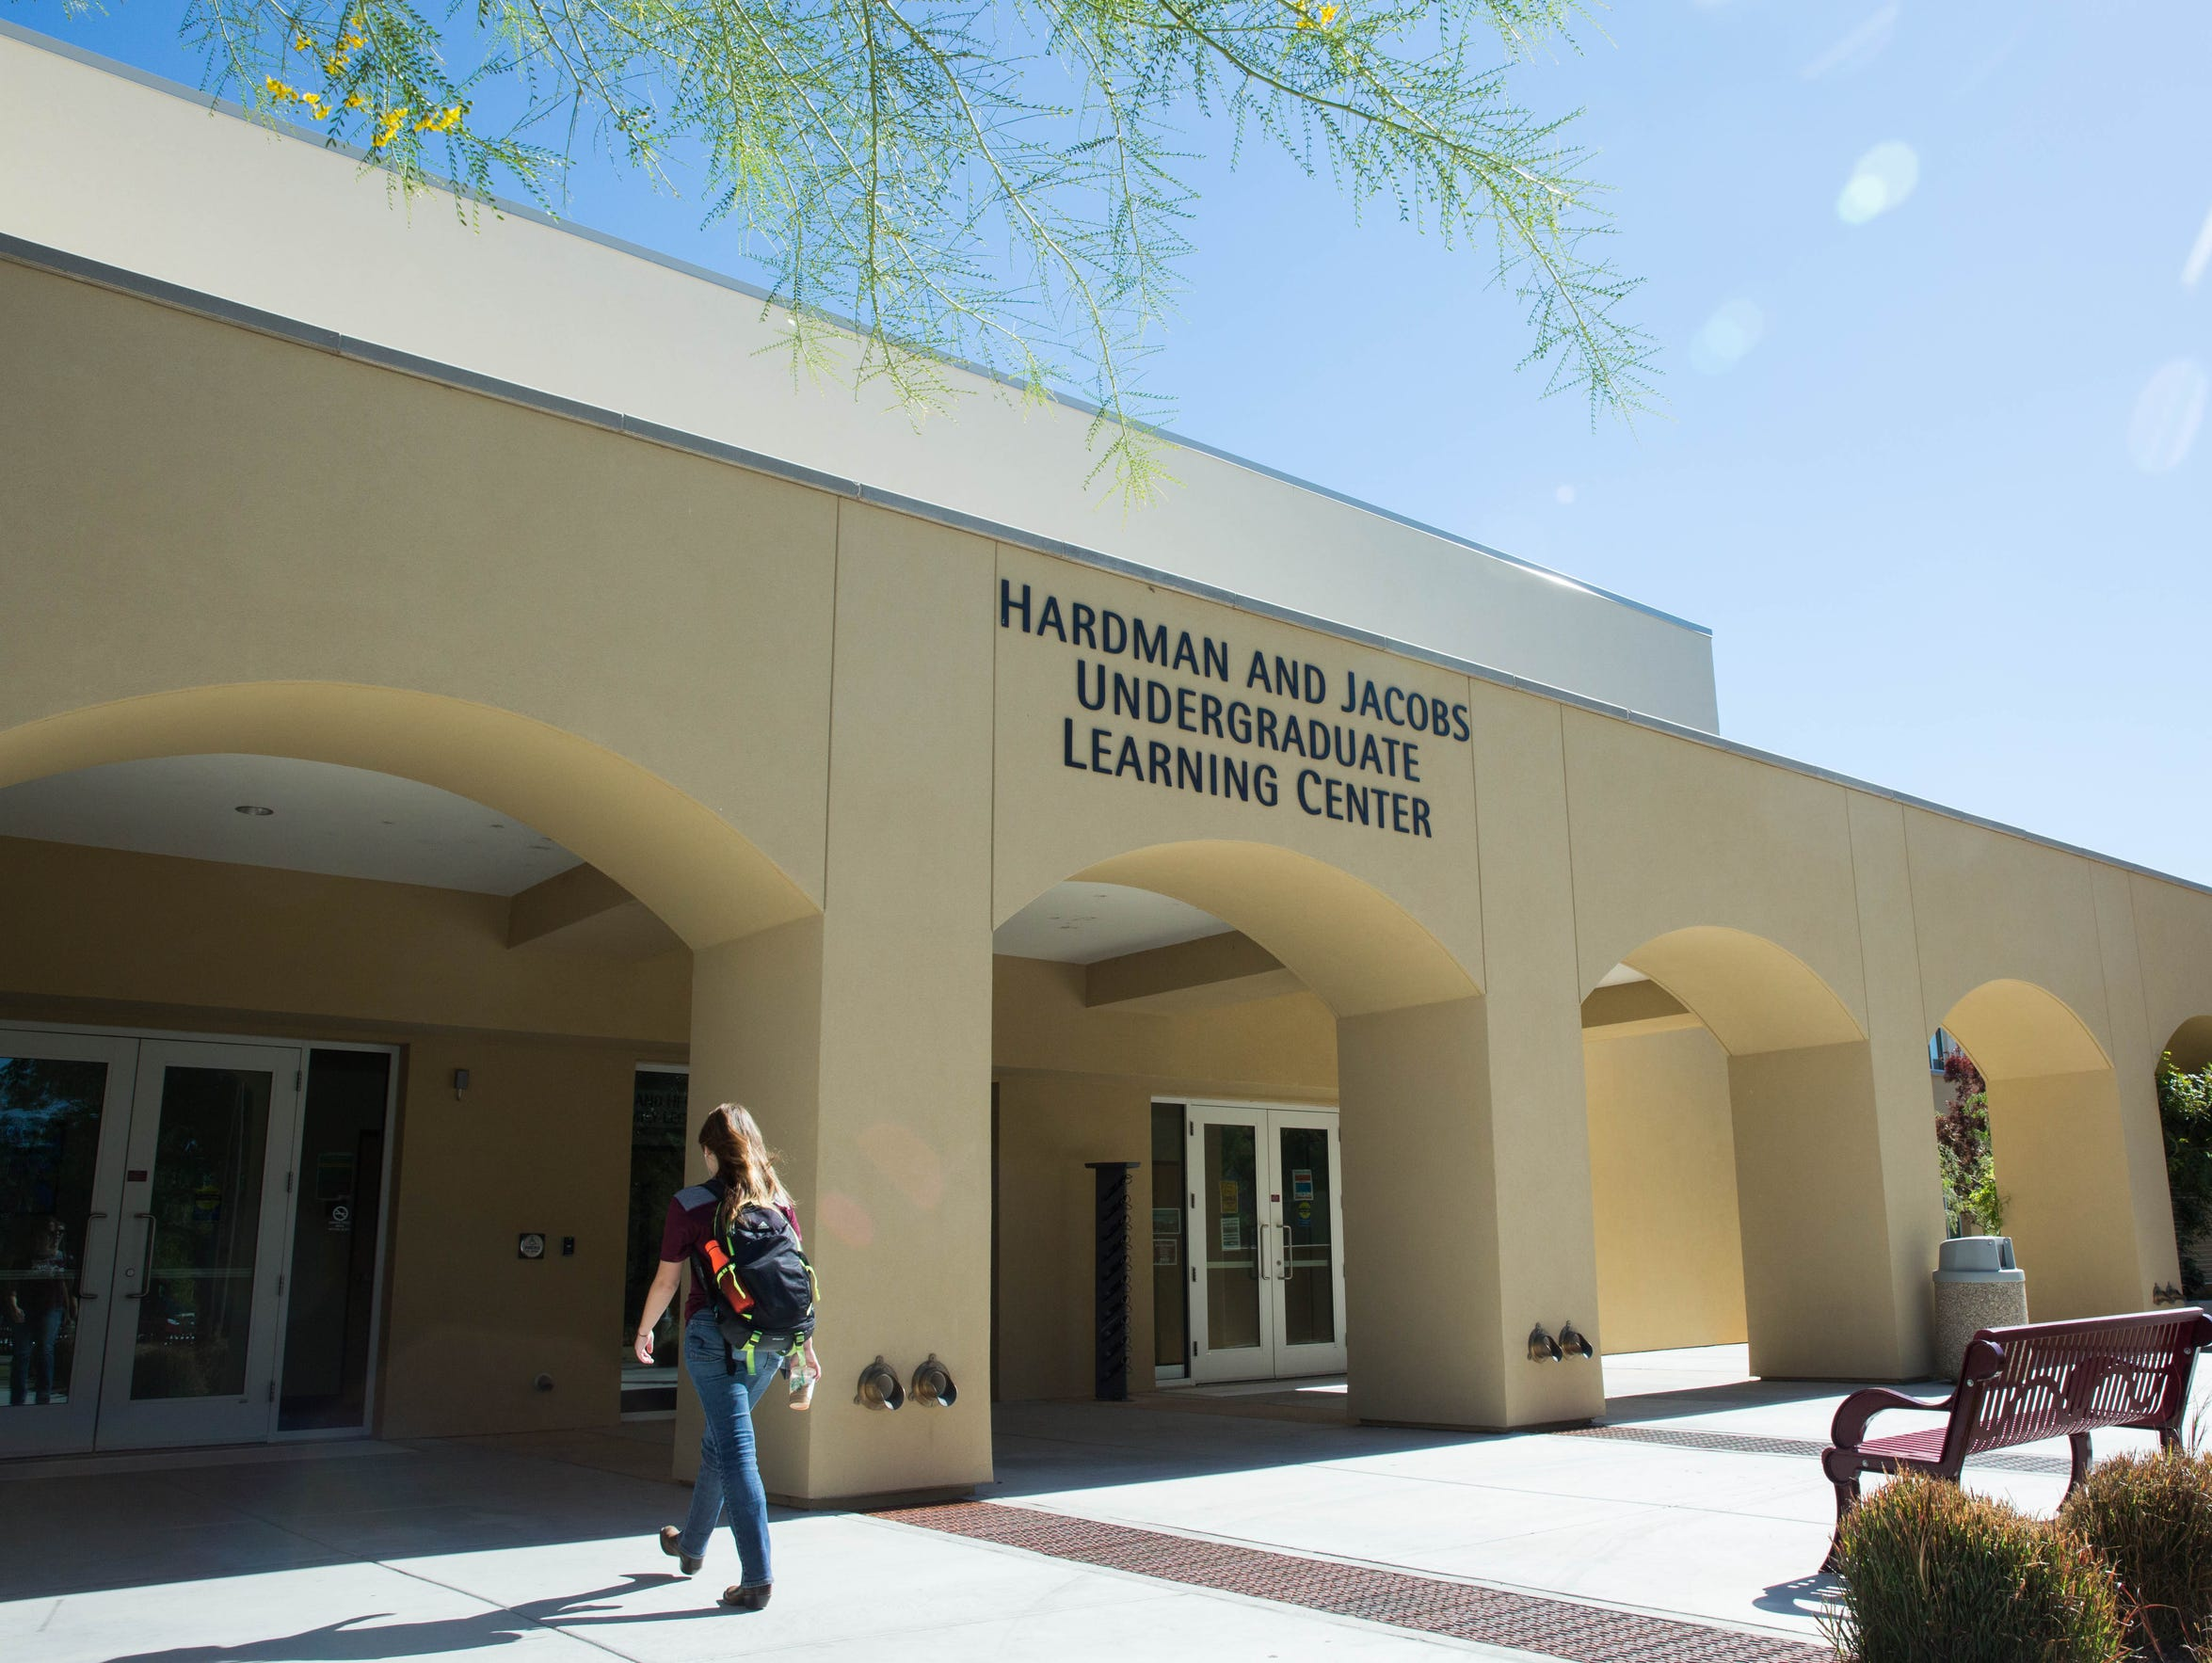 New Mexico State University's Student Success Center, located in Hardman and Jacobs Undergraduate Learning Center, serves as a resource for students dealing with test anxiety.